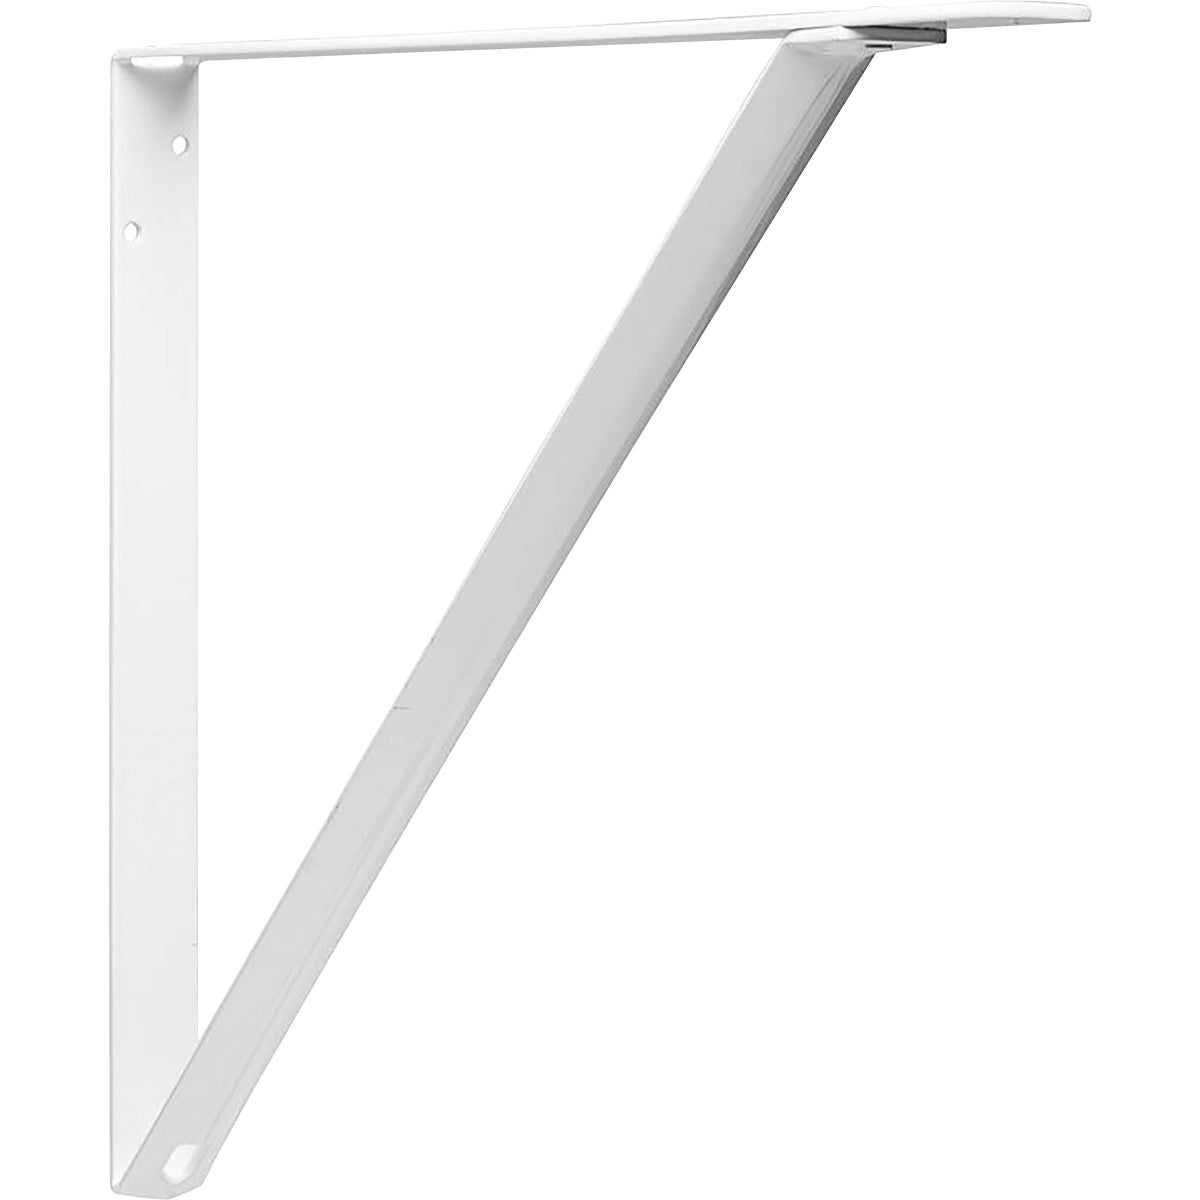 16X18 SHELF BRACKET - RP-0048-19WT by Knape & Vogt Mfg Co